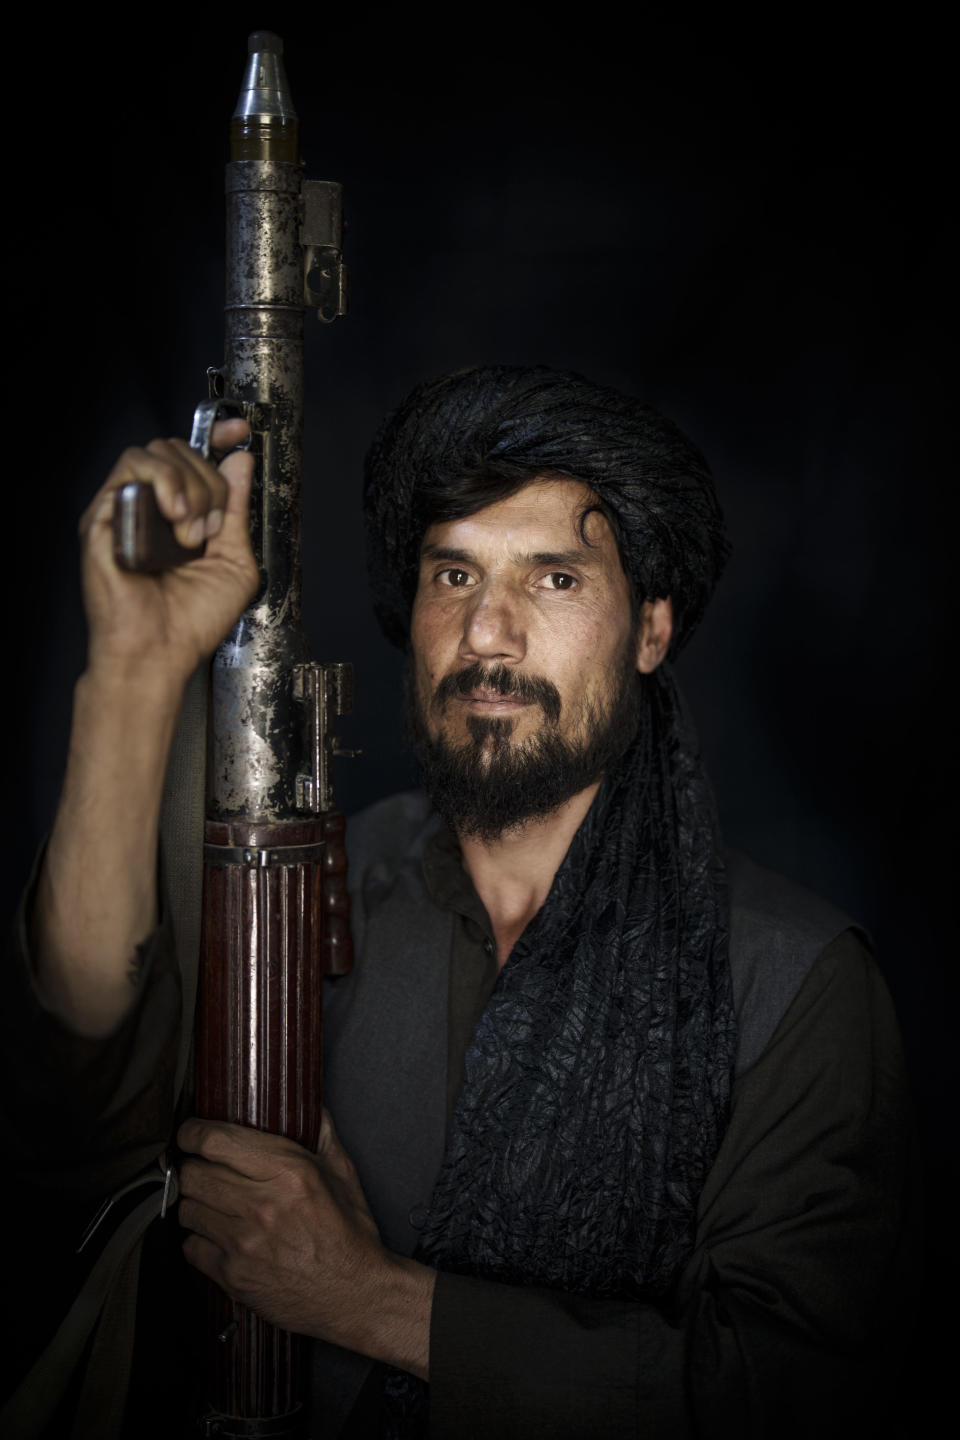 Taliban fighter Mohammad Adel, 43, poses for a photo holding a rocket-propelled grenade, RPG, at a police station in Kabul, Afghanistan, Thursday, Sept. 16, 2021. Adel is from a village near Kabul and has been a Taliban for more than 20 years. He says he went into hiding after US forces entered Afghanistan. (AP Photo/Felipe Dana)